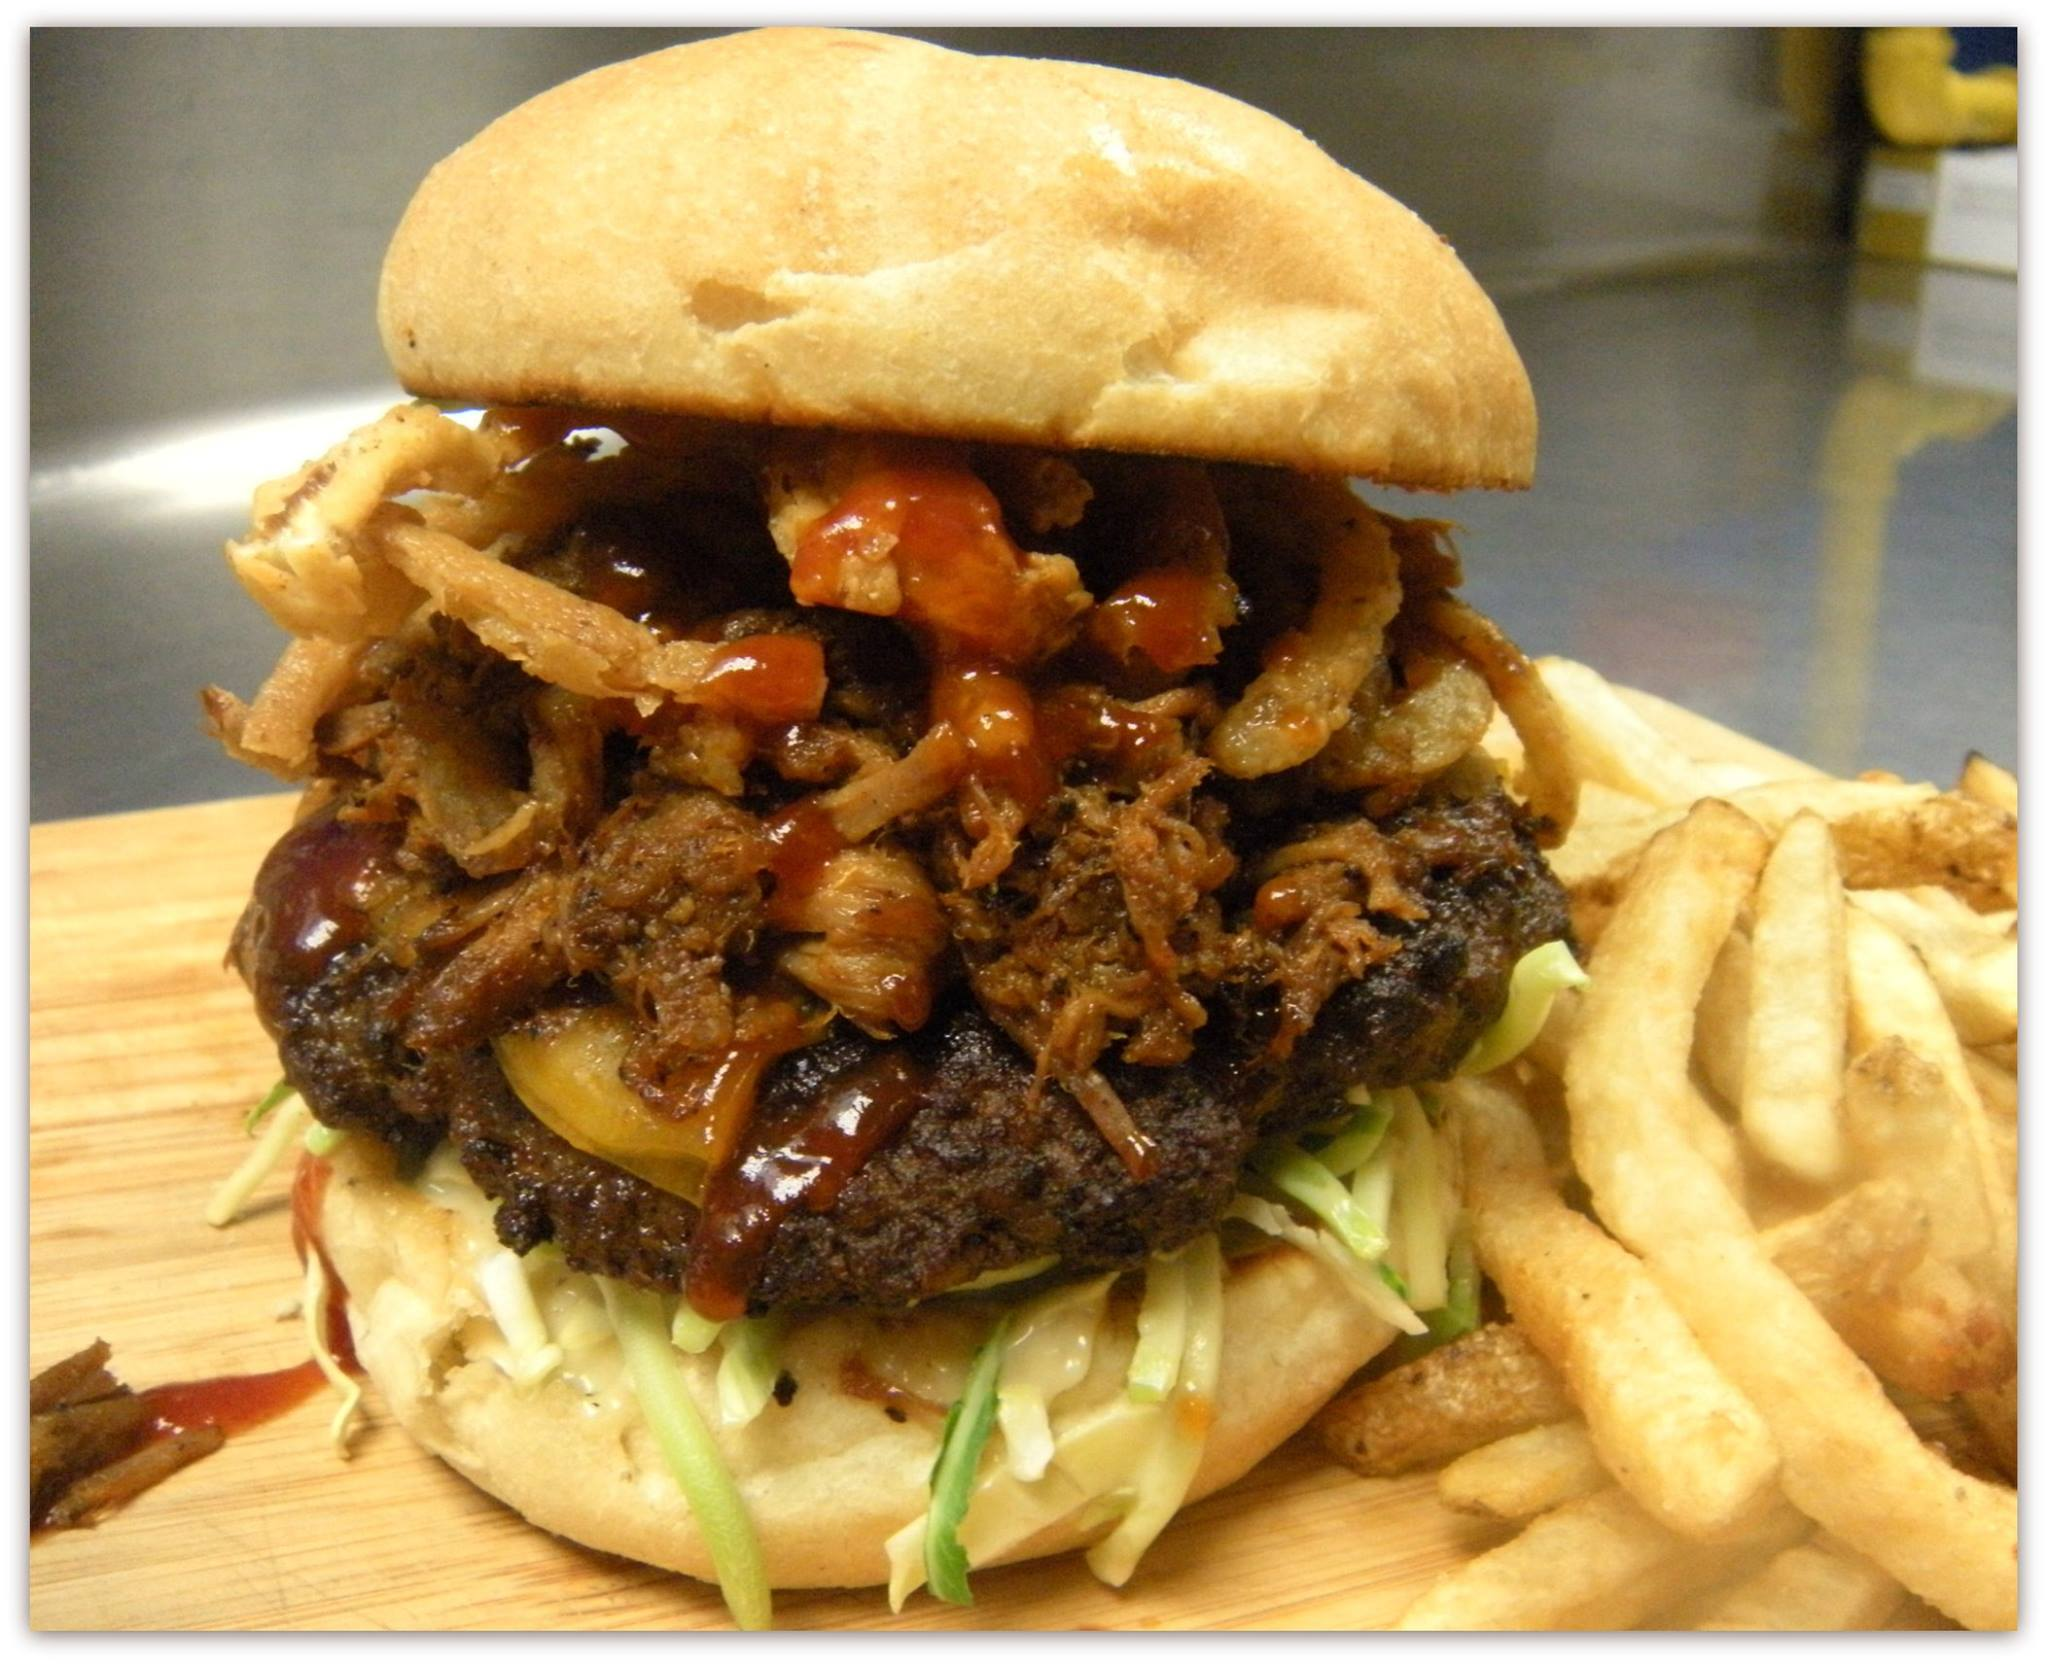 Temptation - The Gold Medal Burger